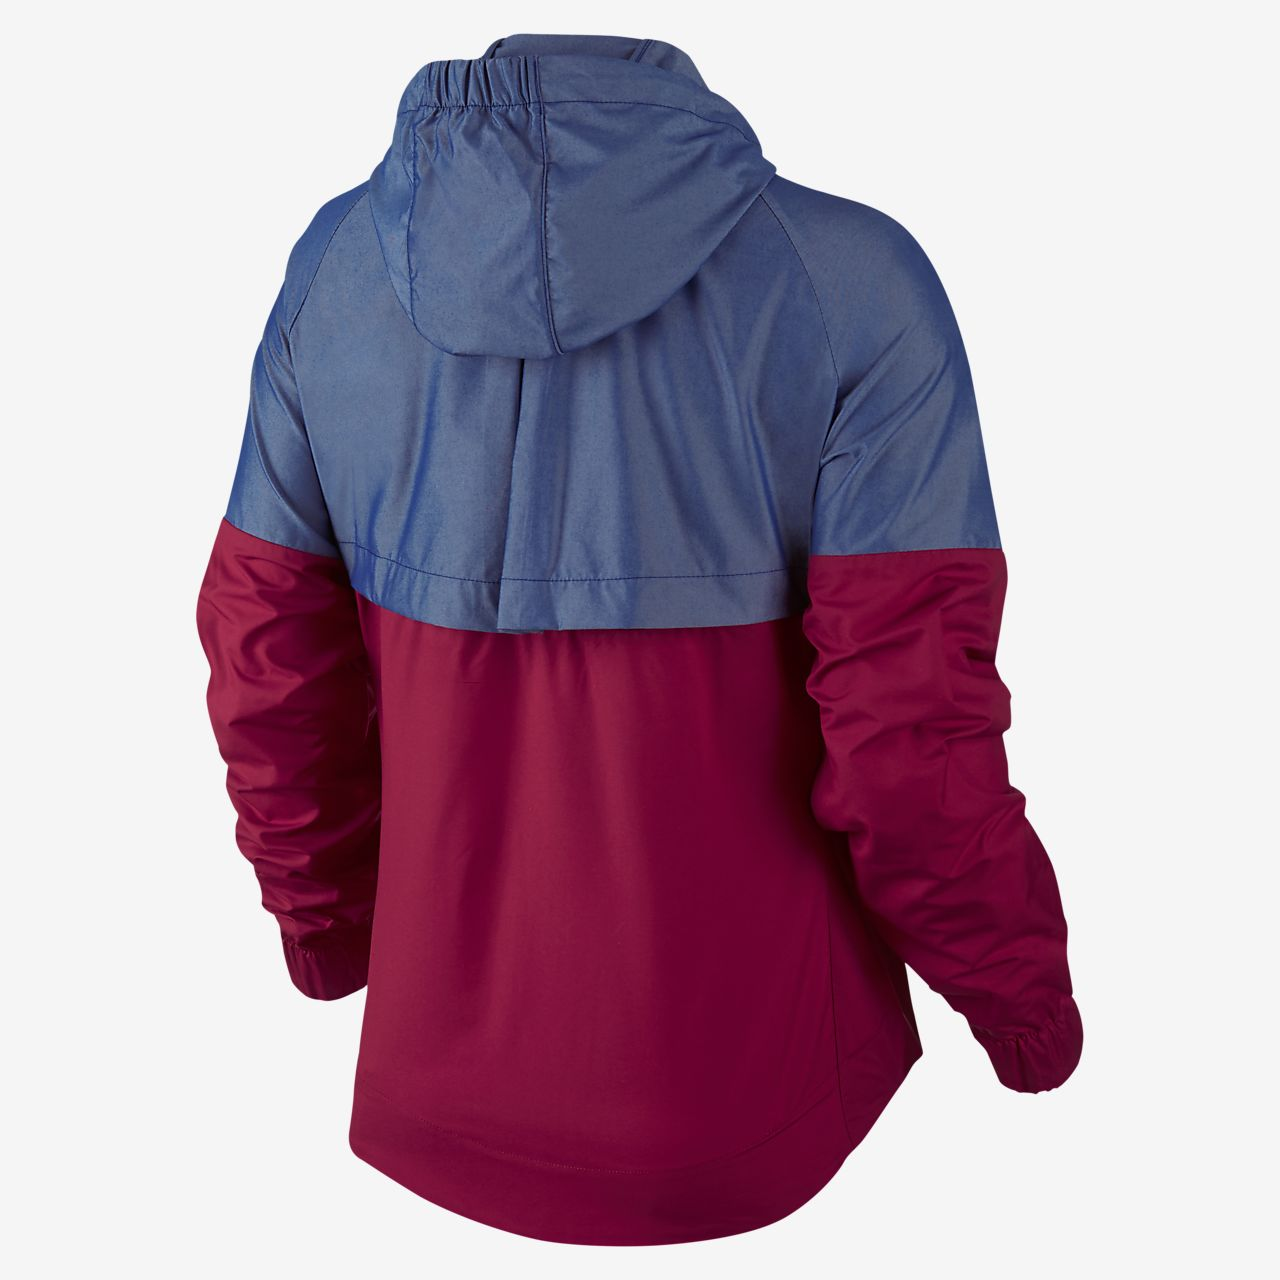 29984dd867a FC Barcelona Authentic Windrunner Women's Jacket. Nike.com CA